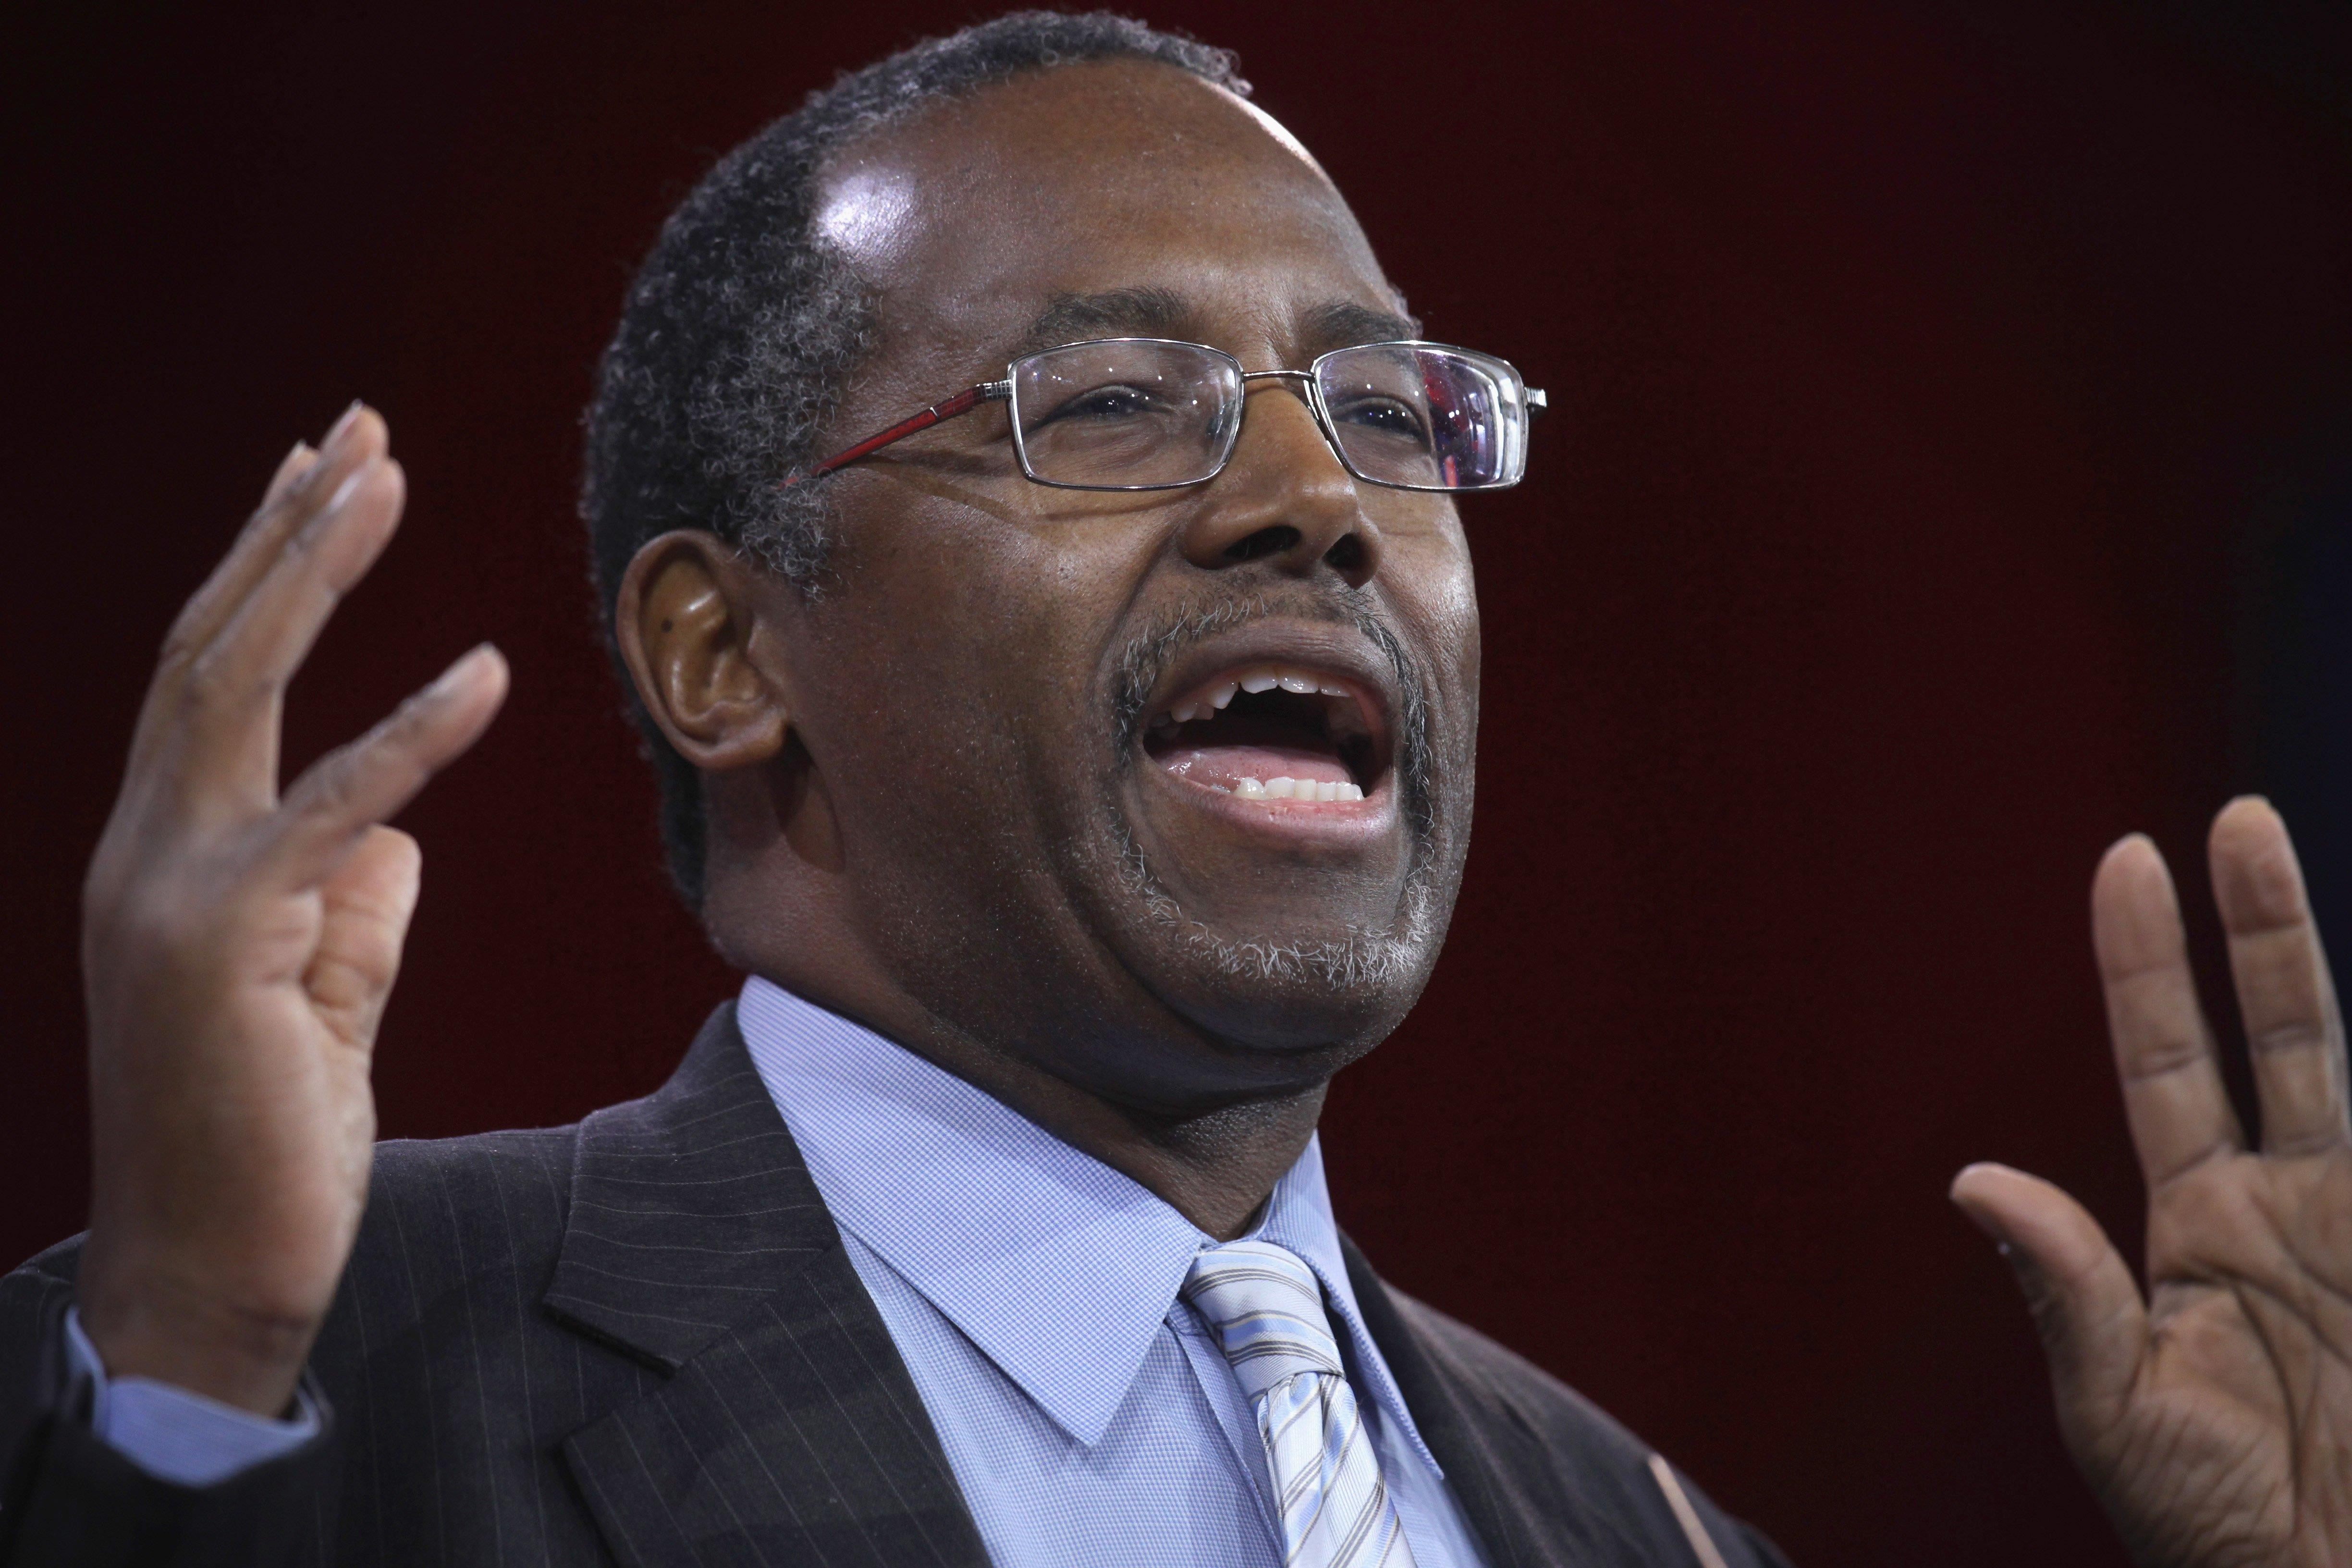 Dr Ben Carson Apologizes For Saying Being Gay Is A Choice